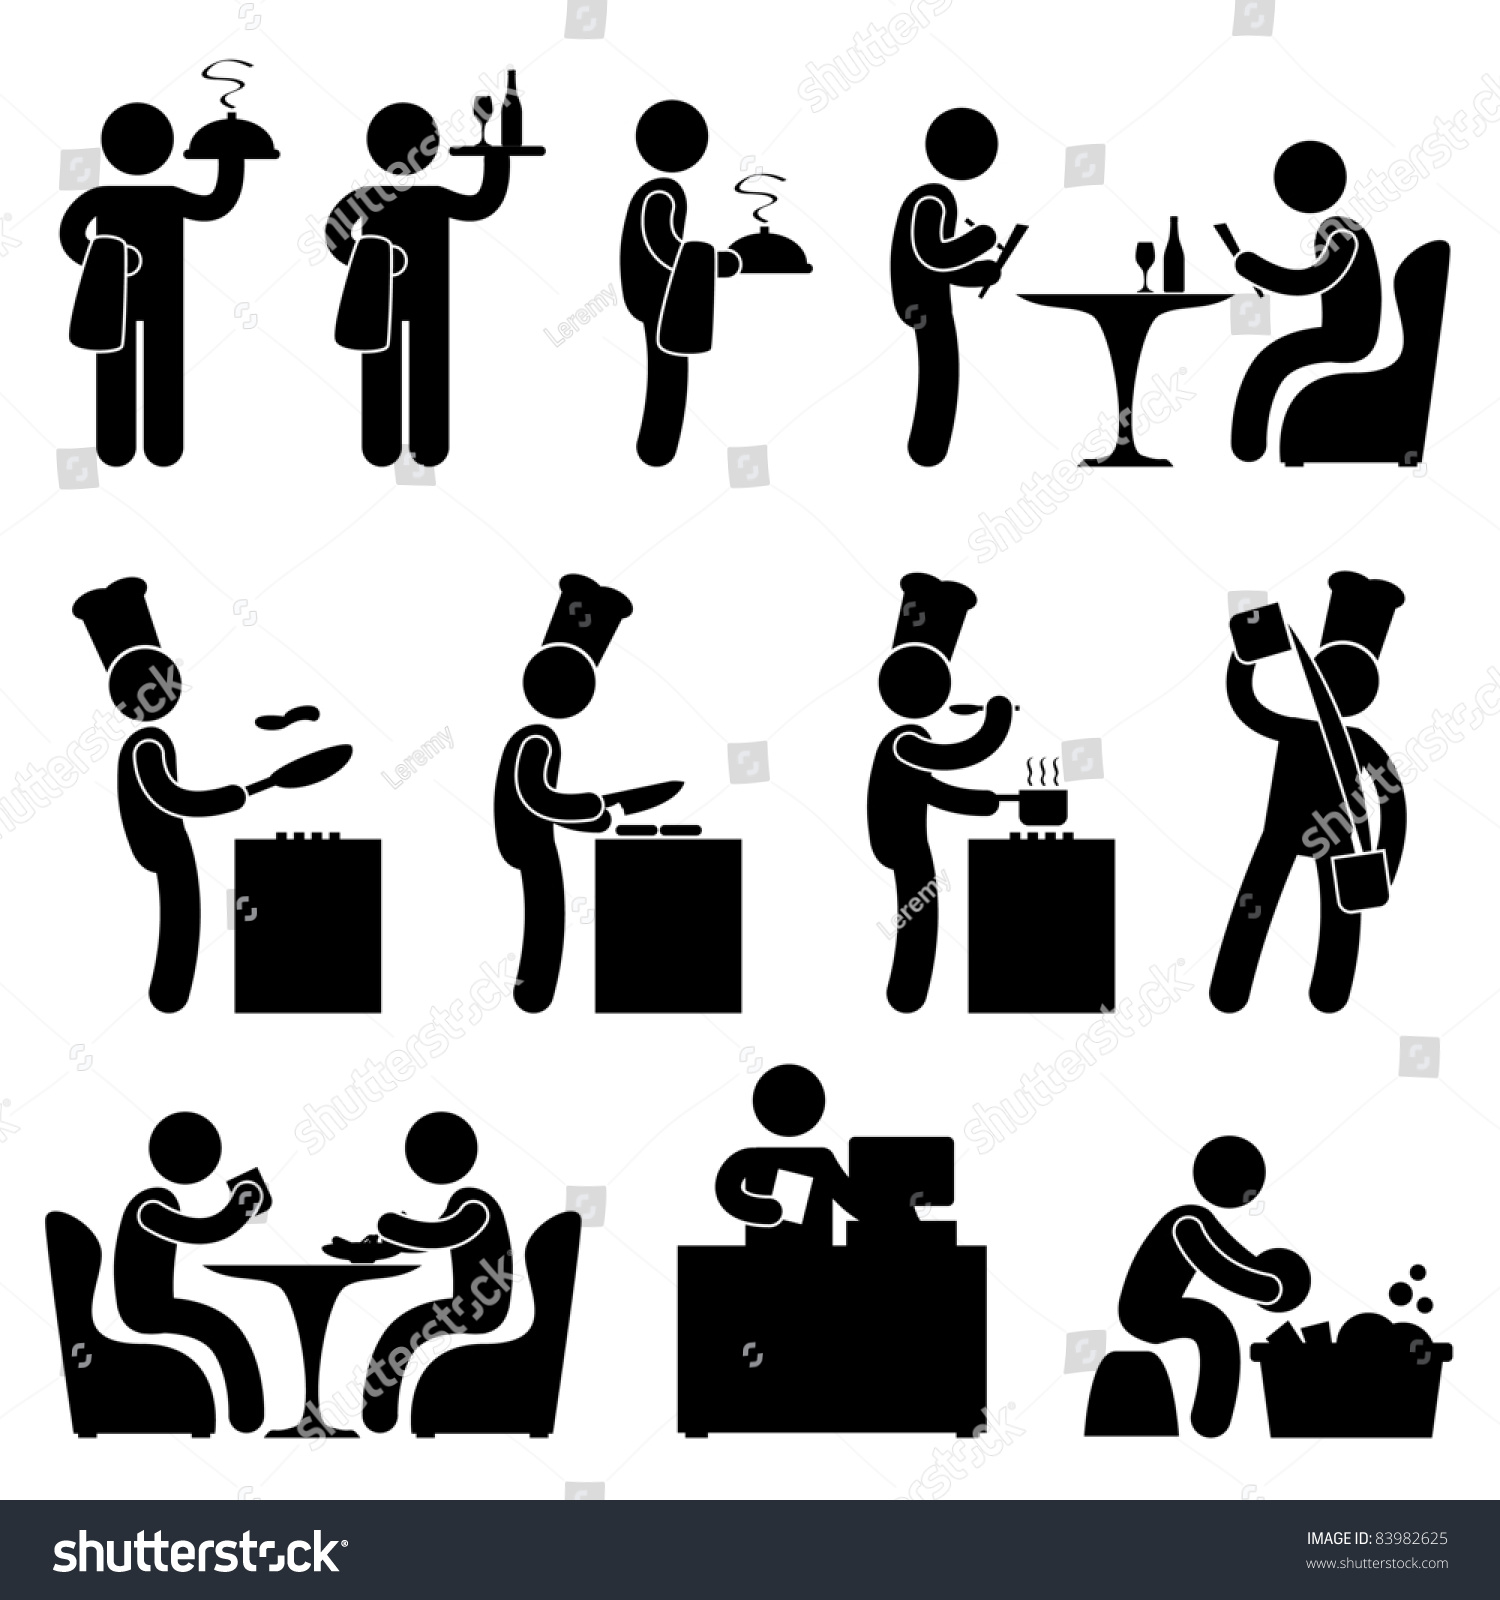 how to create a pictogram